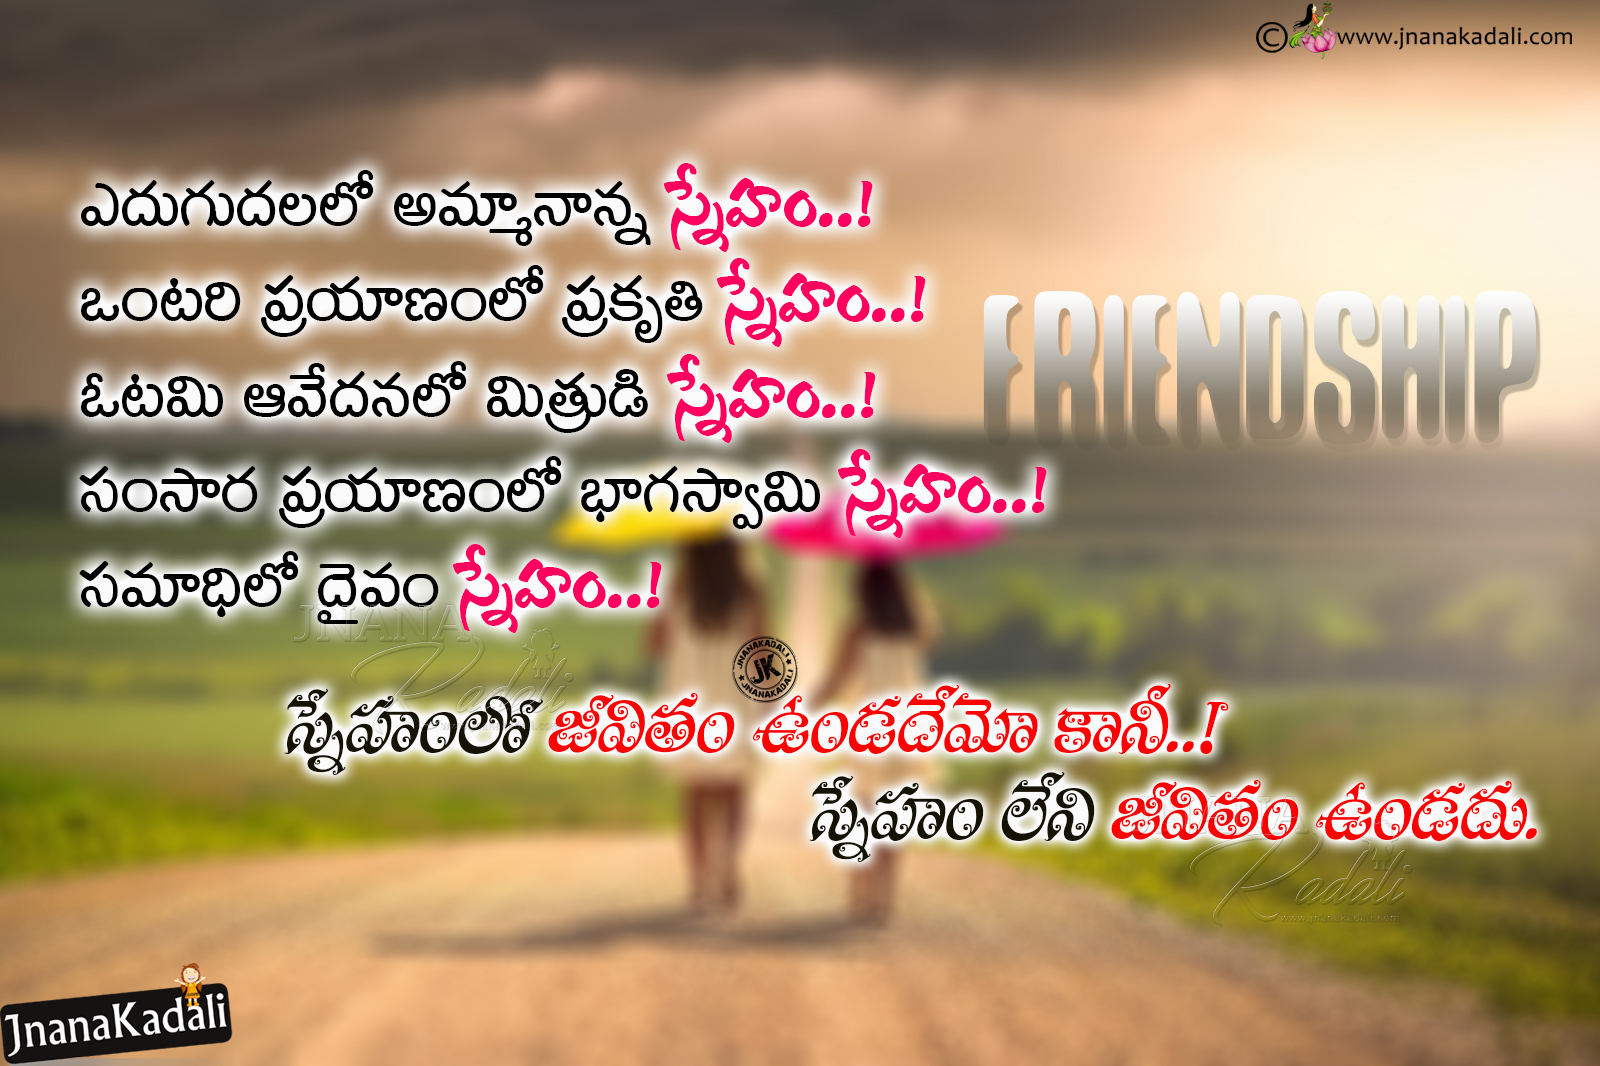 Touching Quotes About Friendship Interesting Latest Best Telugu Friendship Heart Touching Quotes With Cute